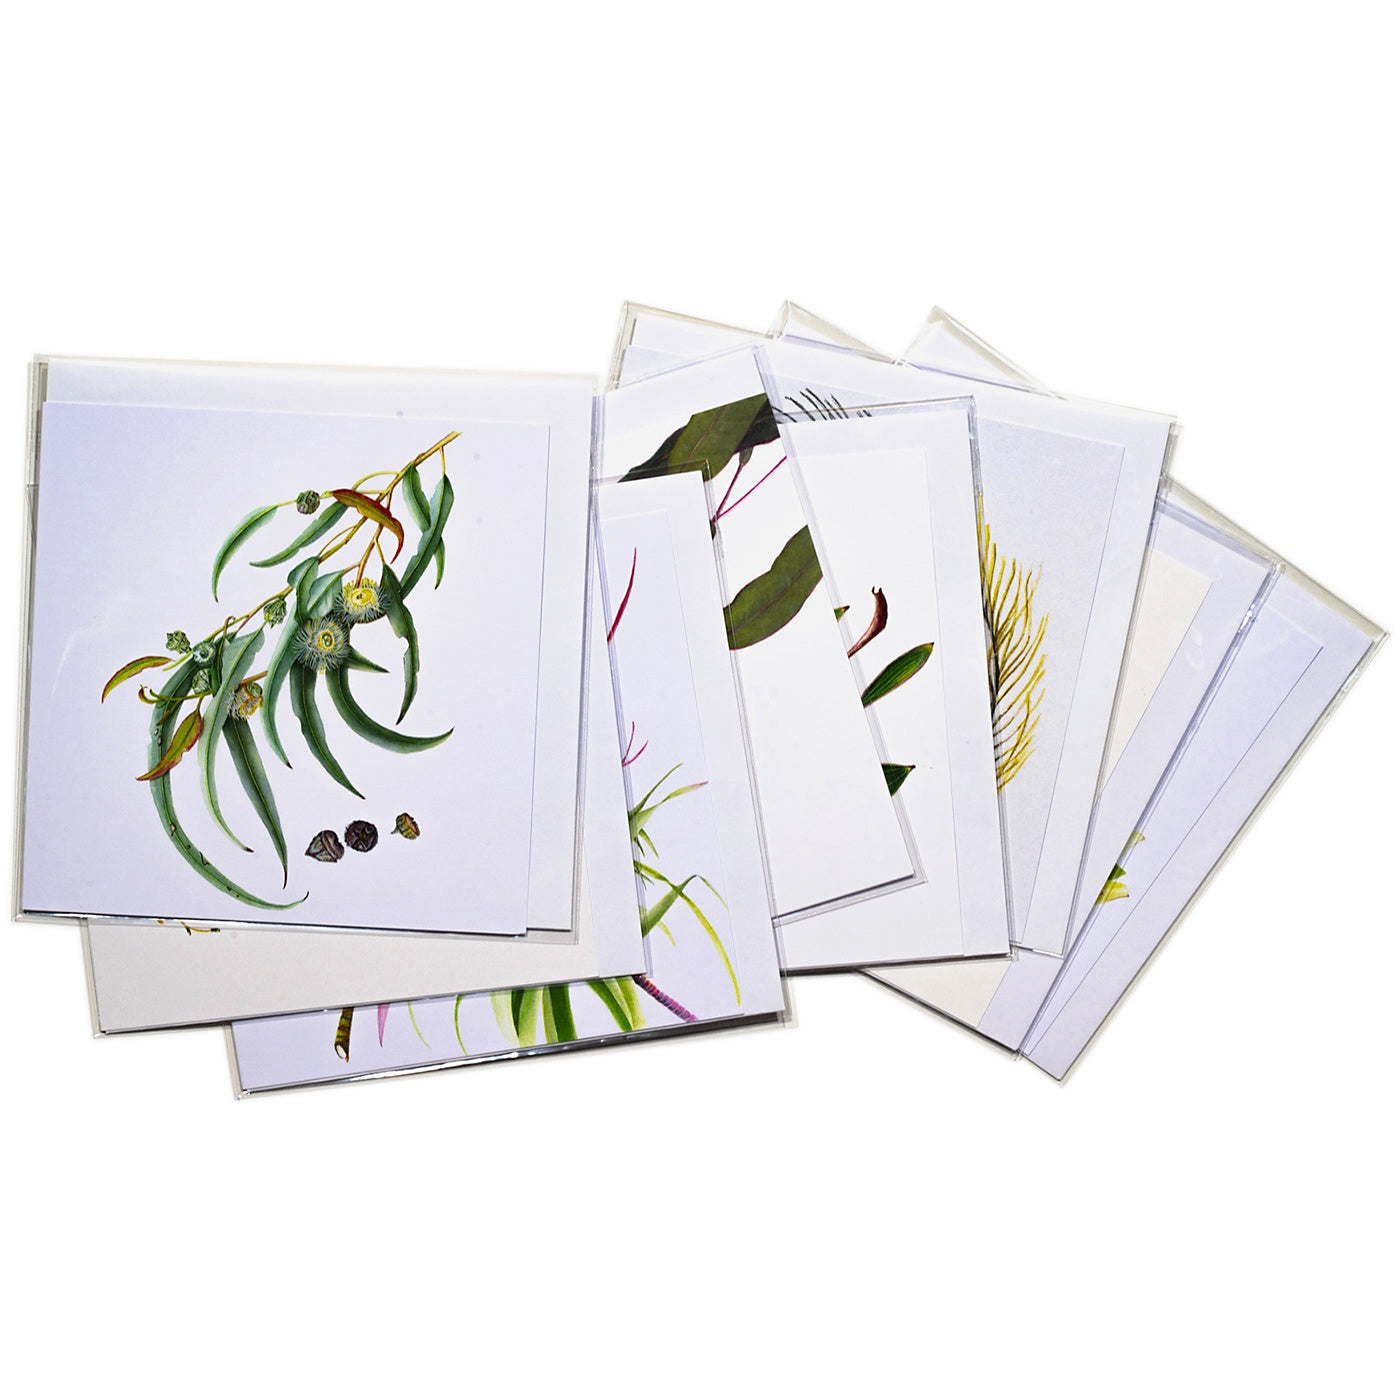 Sue Stuart - Pack of 8 Cards